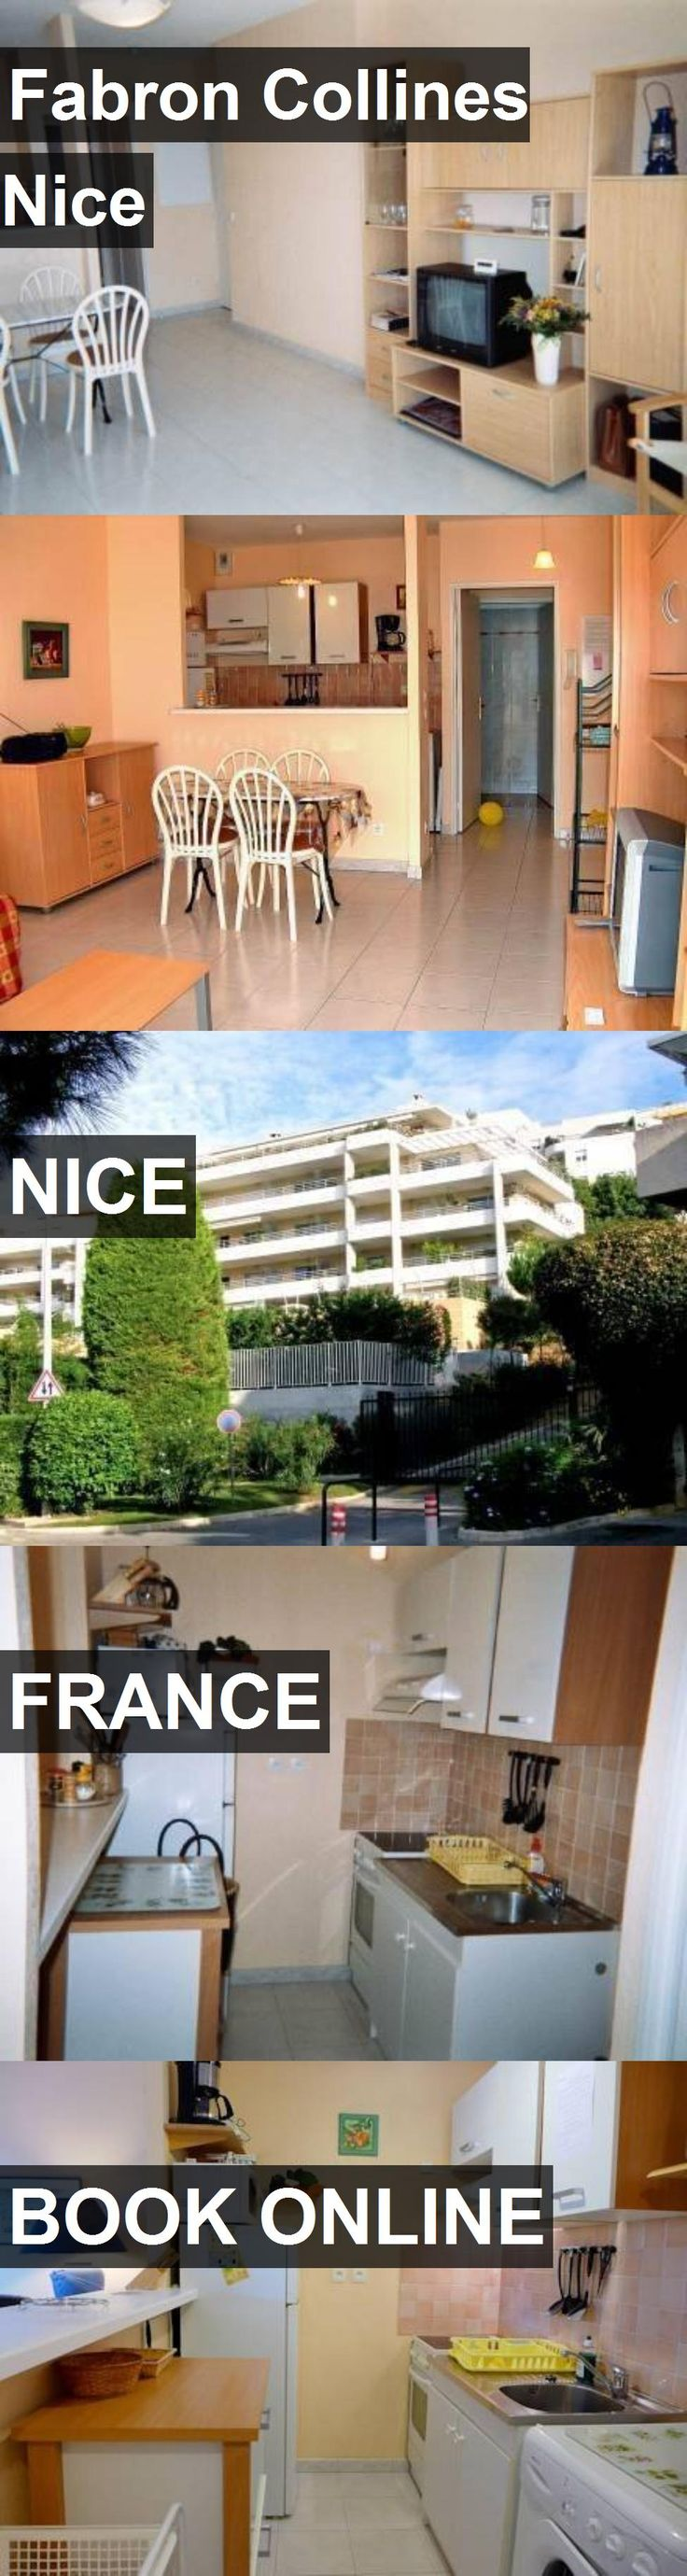 Hotel Fabron Collines Nice in Nice, France. For more information, photos, reviews and best prices please follow the link. #France #Nice #FabronCollinesNice #hotel #travel #vacation